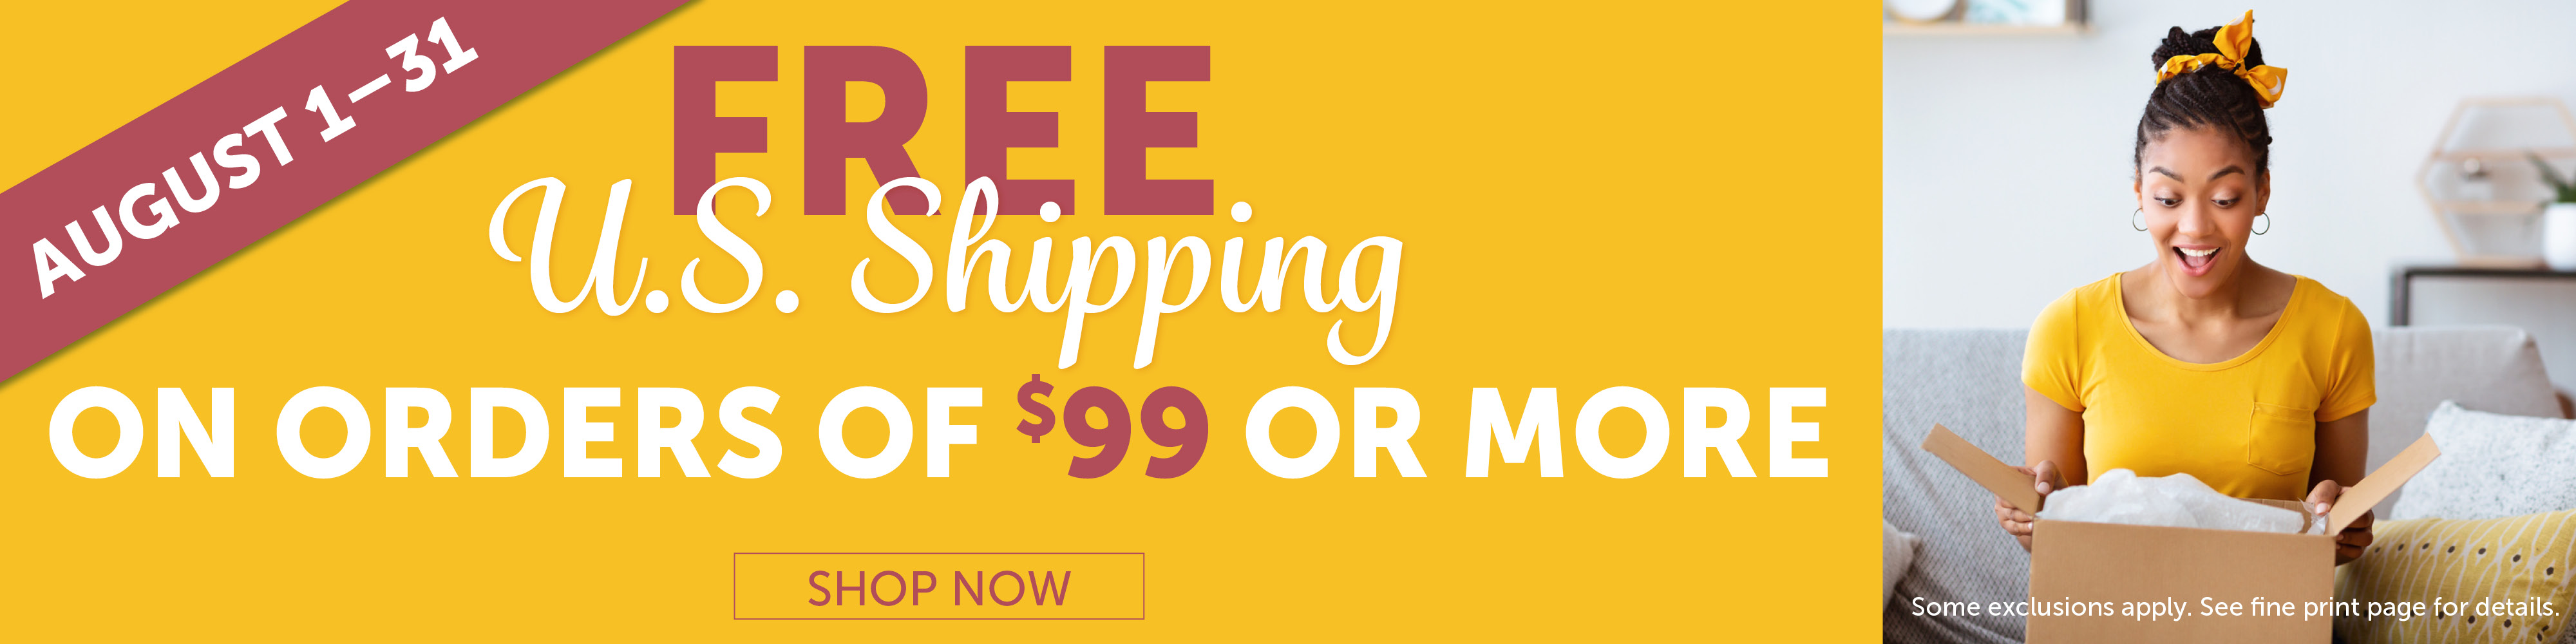 August 1–31 - Free U.S. Shipping On $99+ Purchases